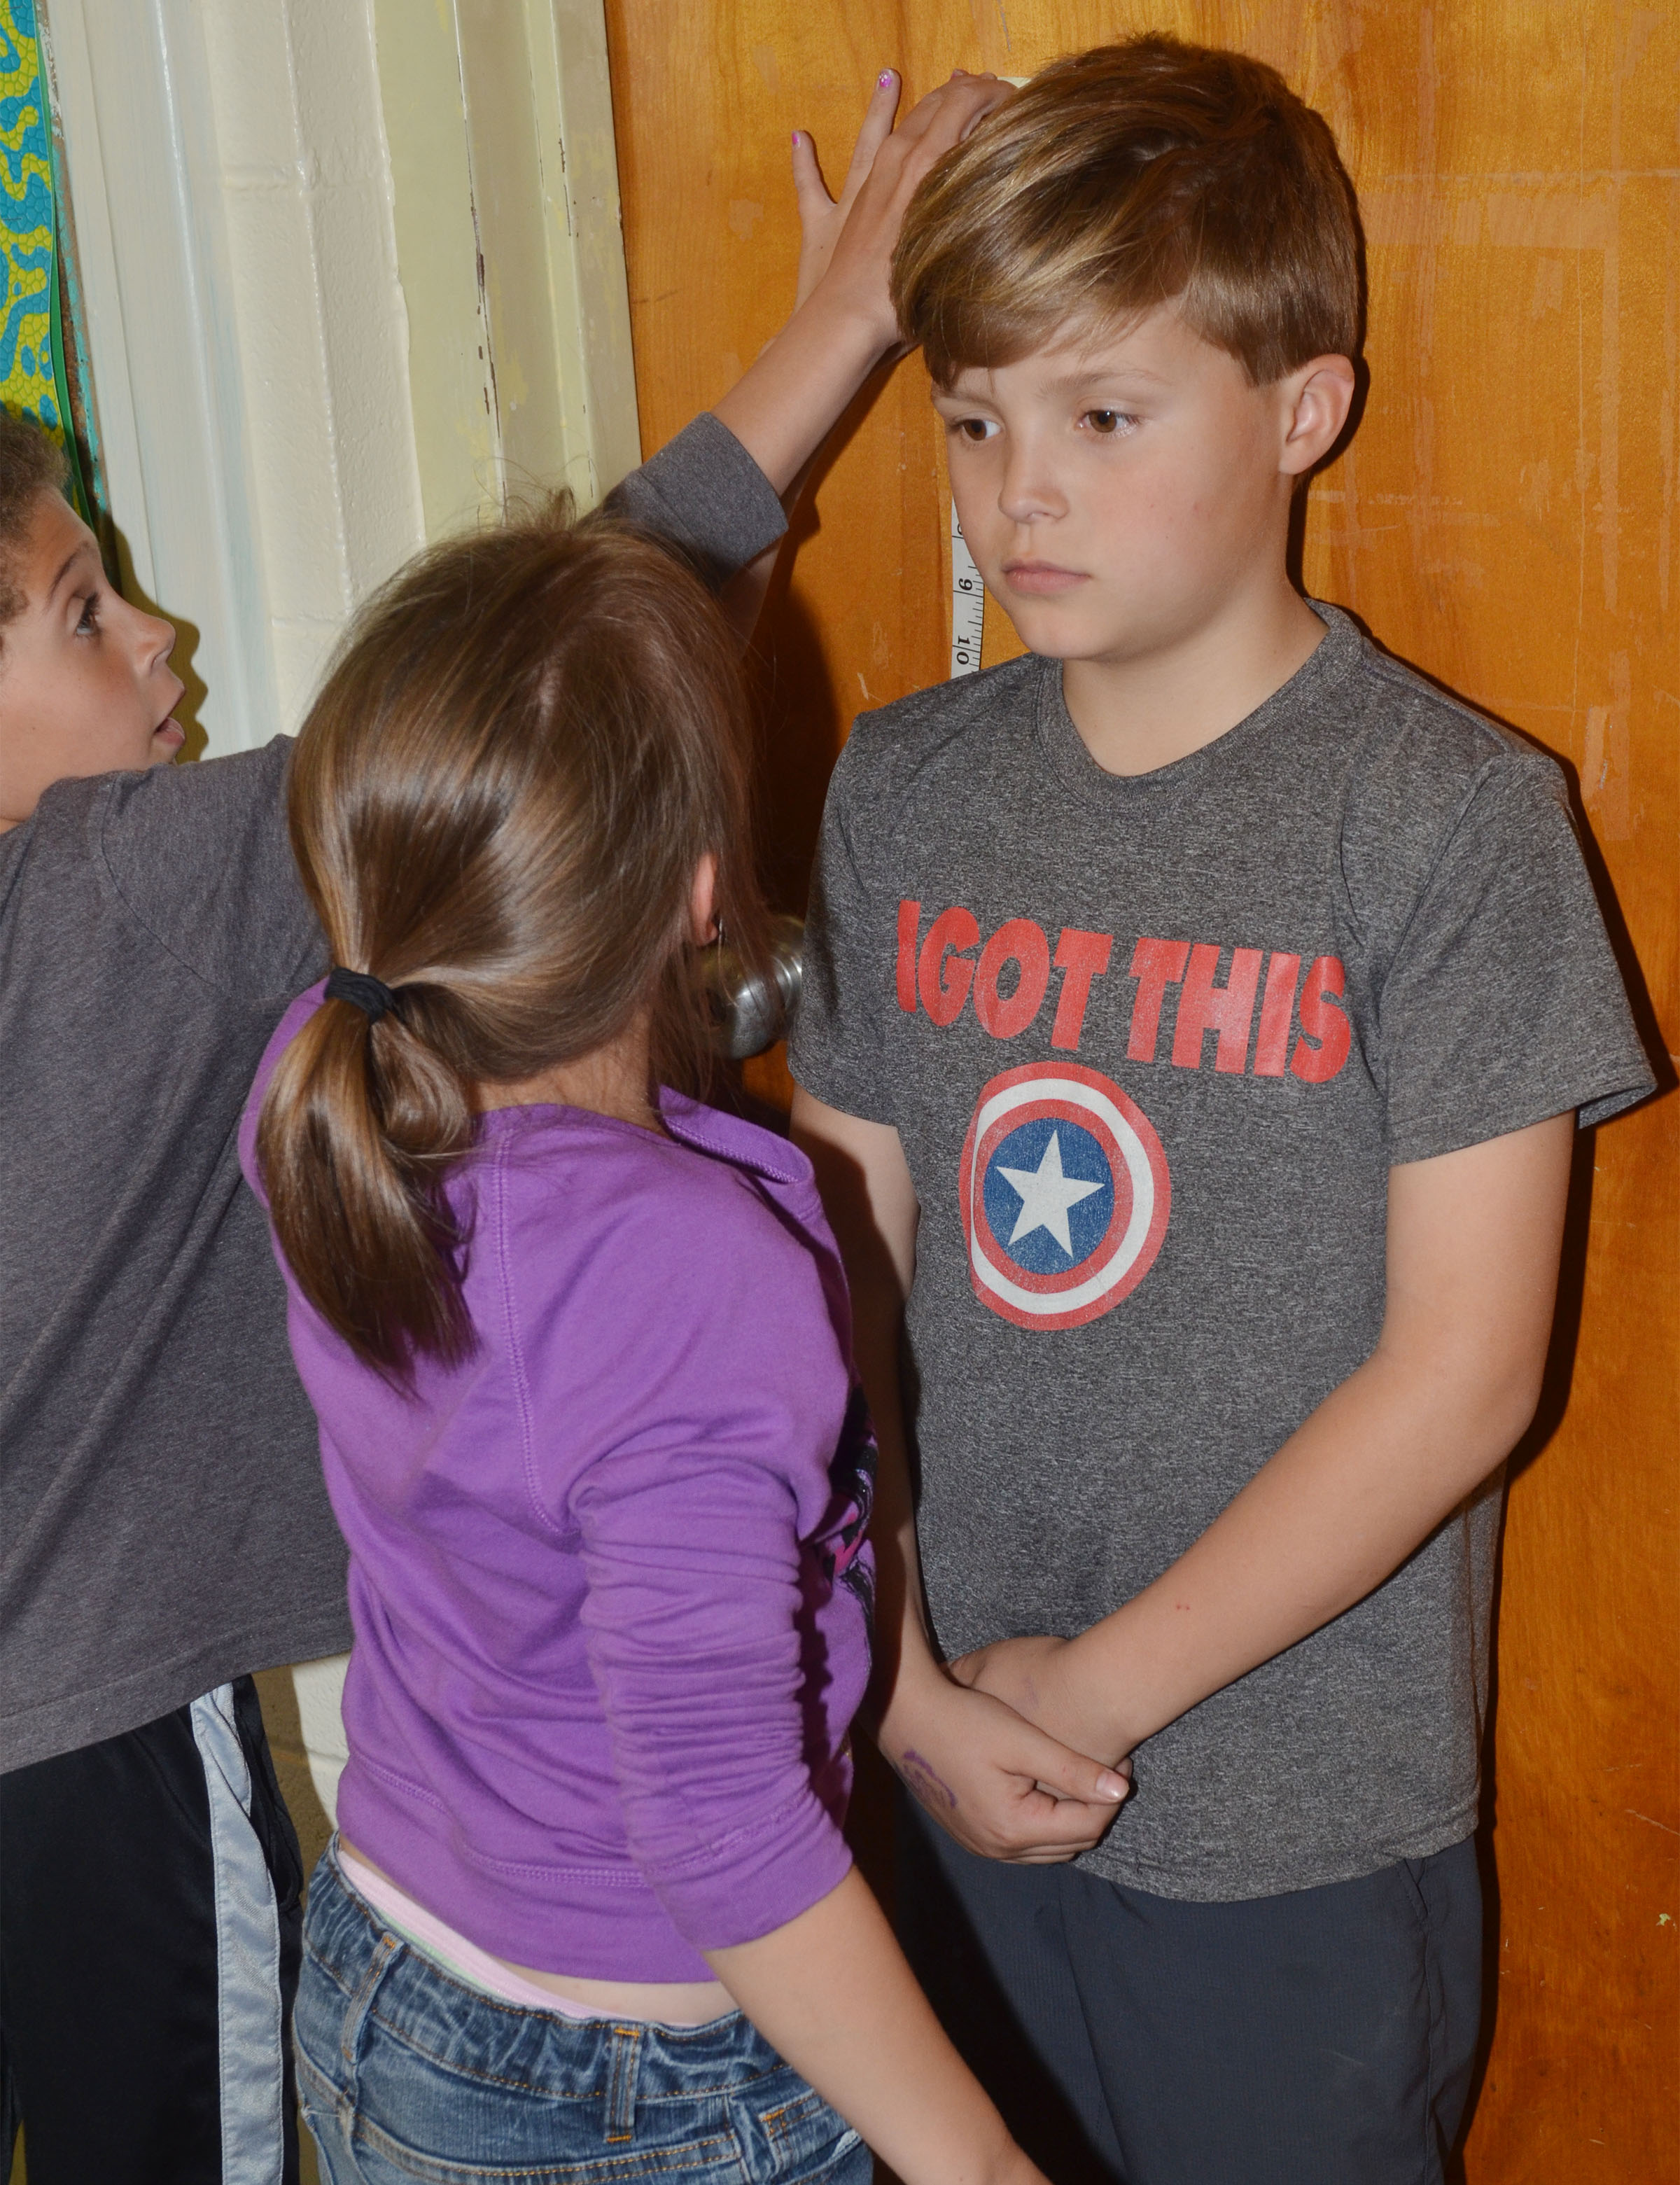 CES second-grader Emerson Gowin stands as his classmates Trever Lasley, at left, and Alyah Meadows measure him.